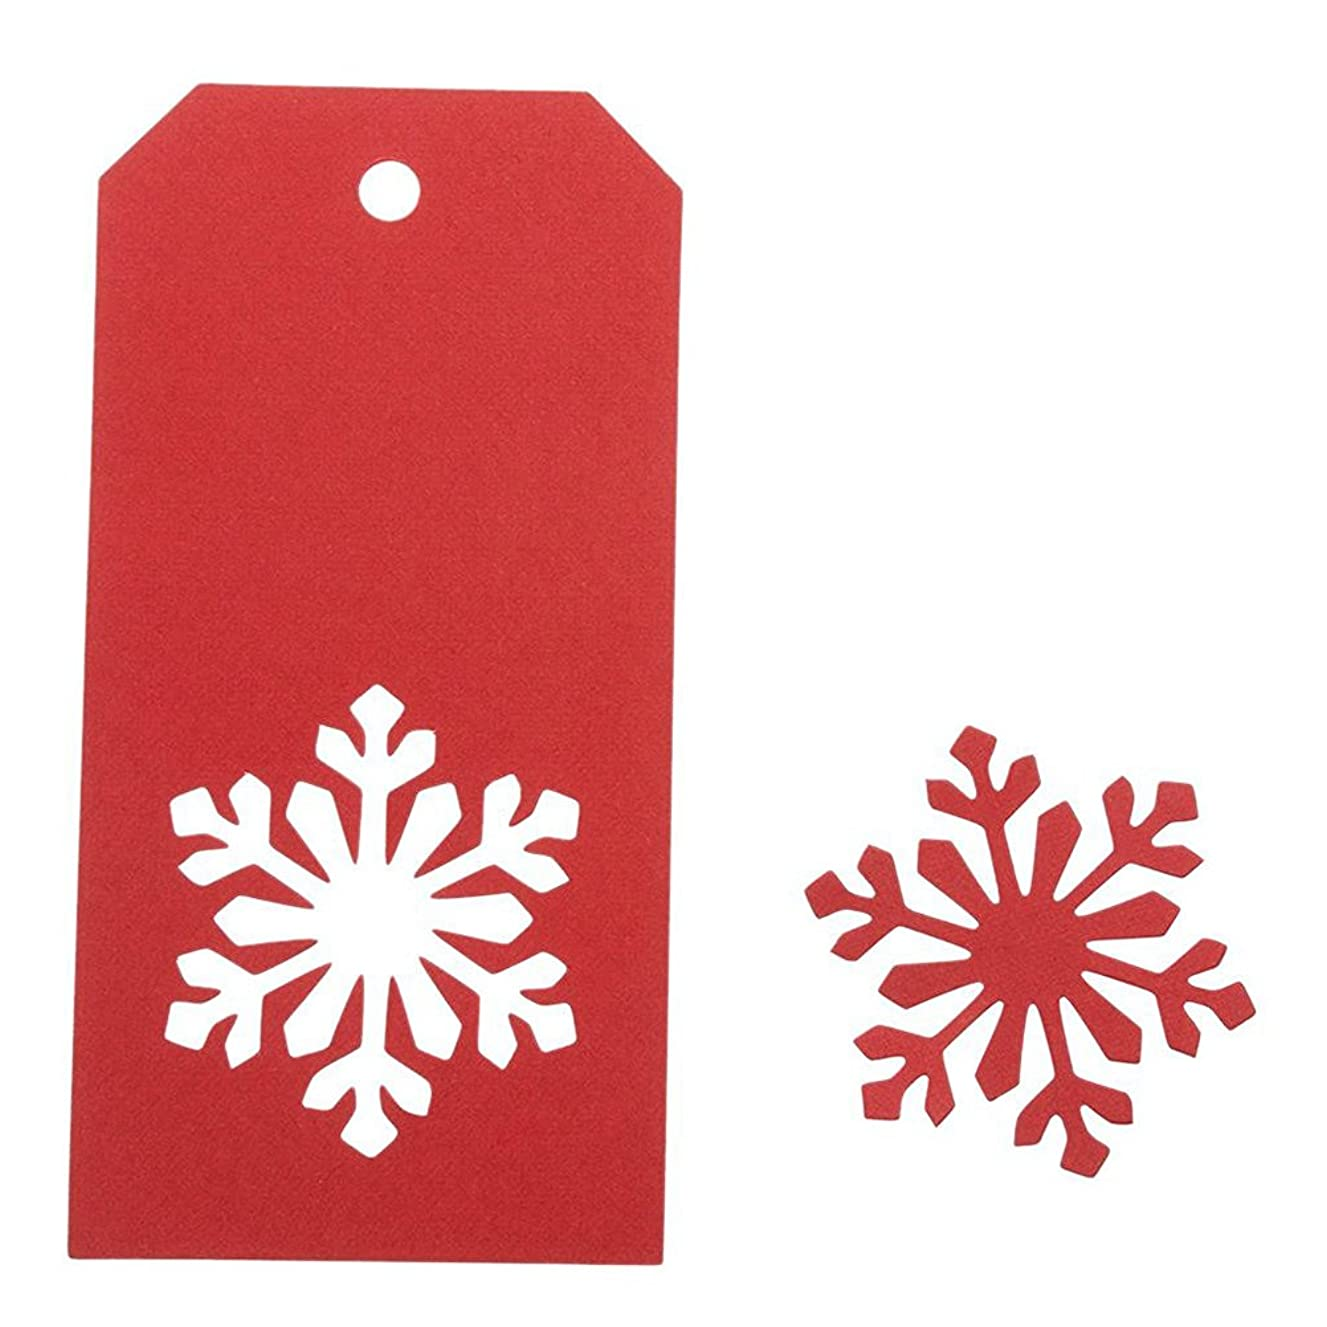 100 PCS Kraft Paper Price Tags Labels Christmas Gift Tags Christmas Snowflake Hanging Tag with String Rectangle Craft Hang Tags Favor Gift Tags Red